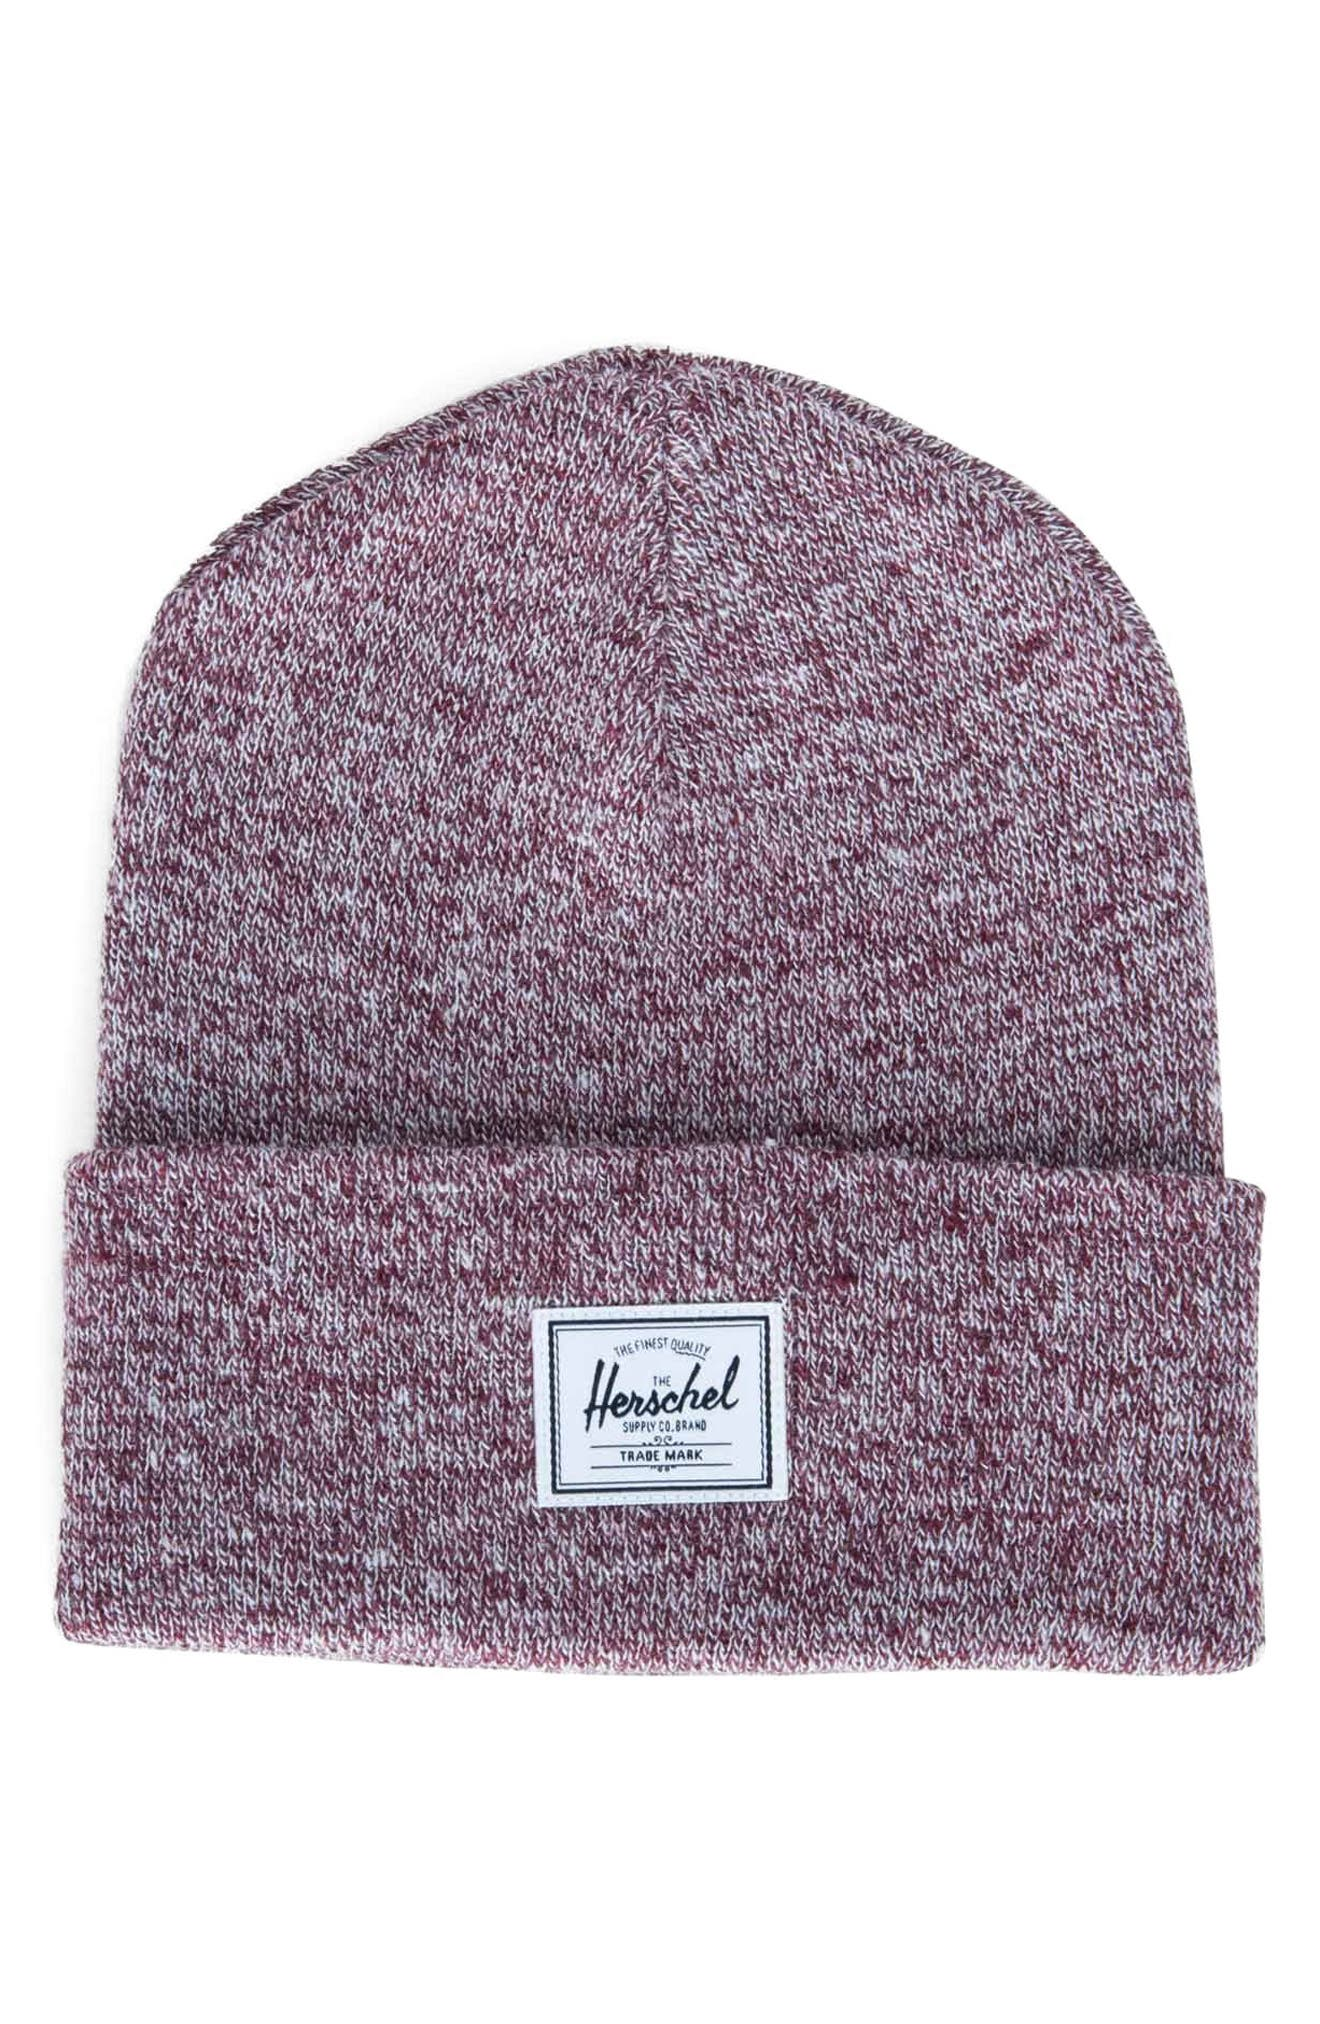 Herschel Supply Co. Elmer Knit Beanie